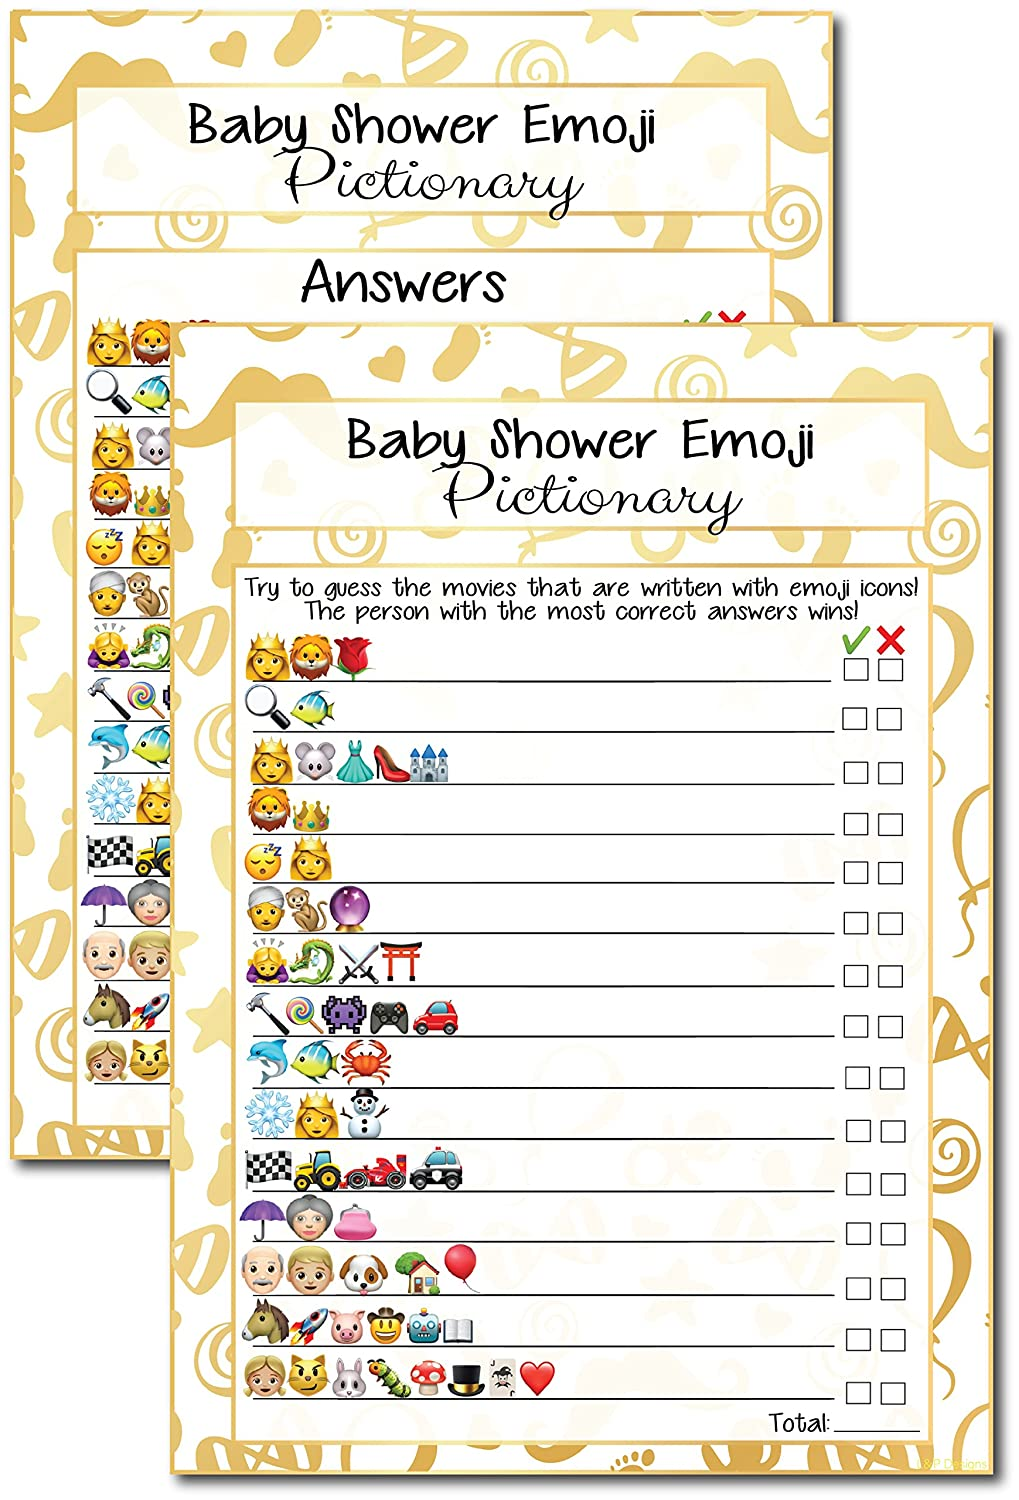 20 Kids Movie Emoji Pictionary Baby Shower Games Ideas For Moms, Dads, Kids,  Girls or Boys, Couples, Adults, Fun Cute Shower Party Bundle Set, Gold  Favor, ...